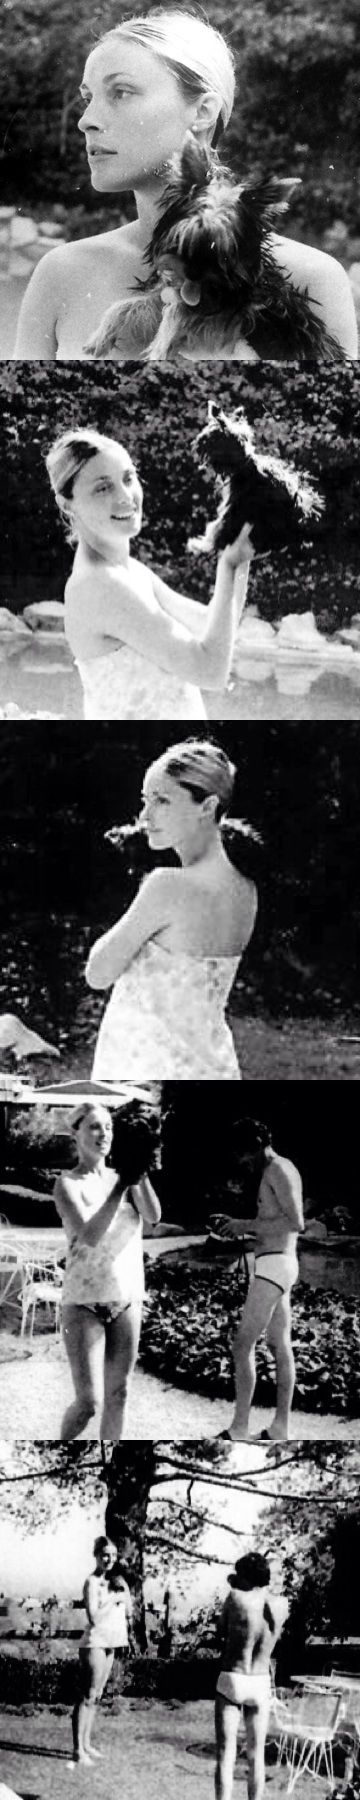 Sharon Tate with her dog Prudence and Jay Sebring at her Cielo Drive home in early August of 1969, Wojciech Frykowski took at least two of t...